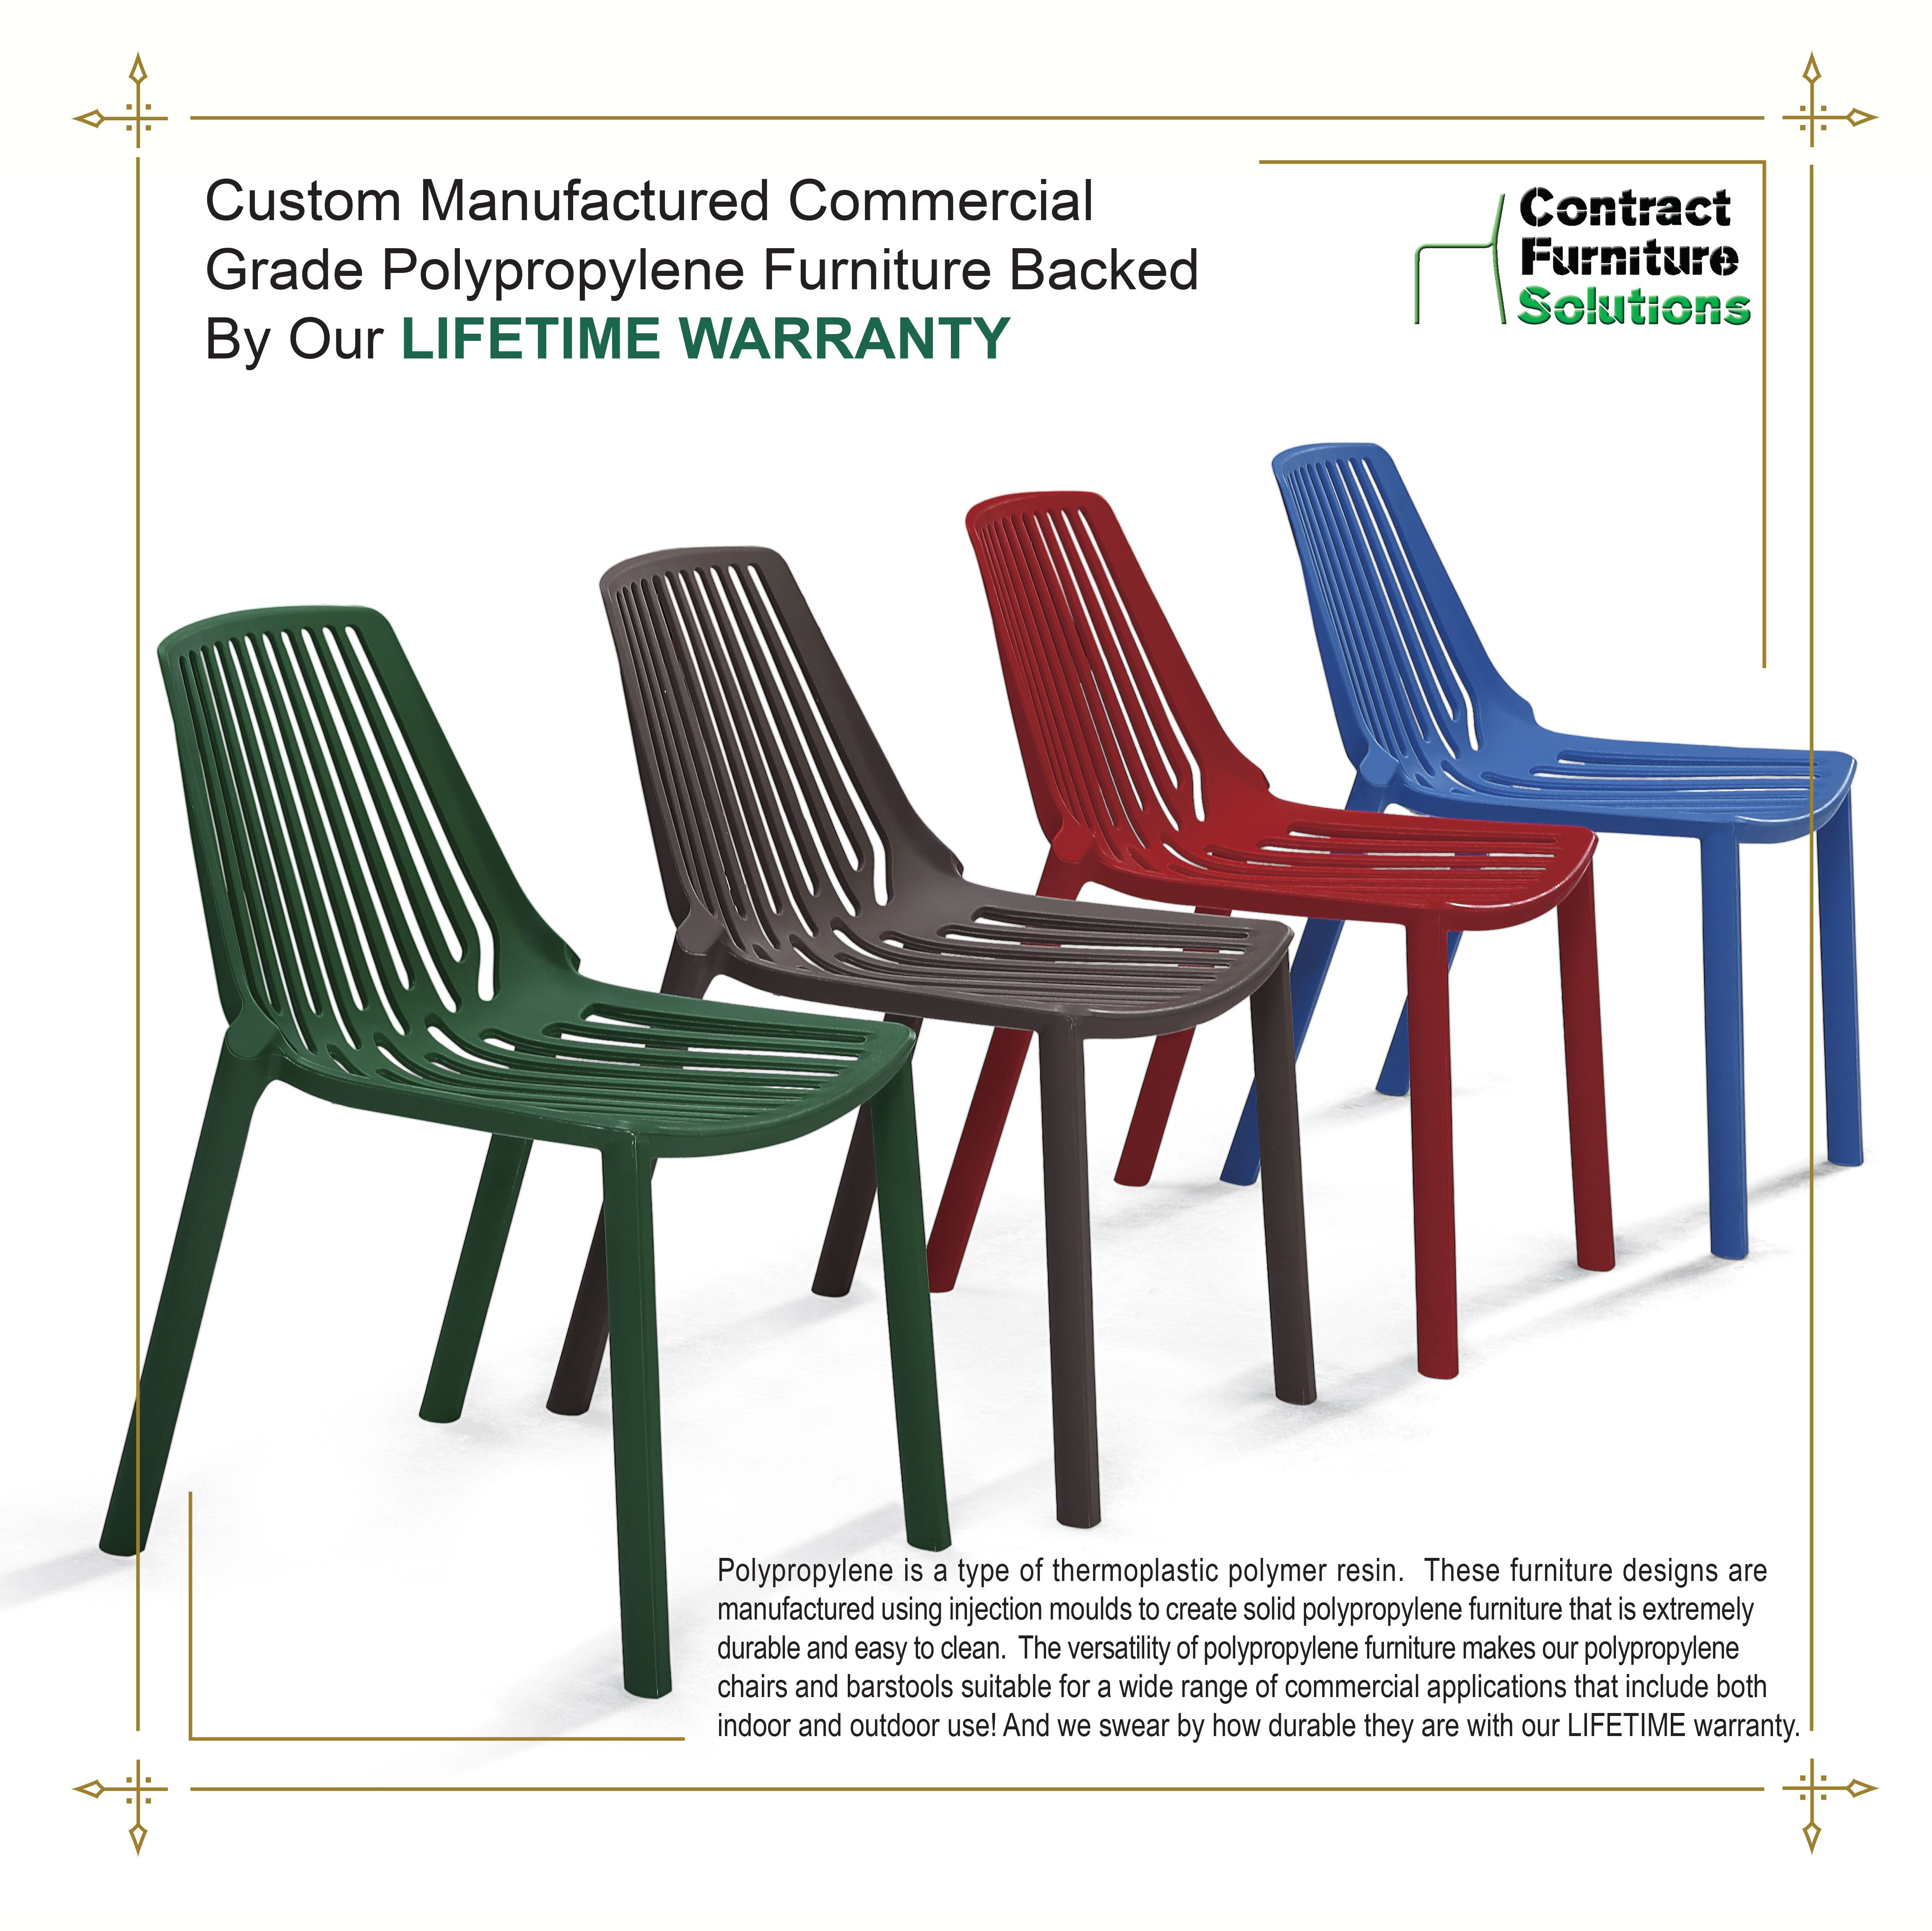 Contract furniture solutions is your number one source for polypropylene seating chairs and barstools these furniture designs are manufactured using